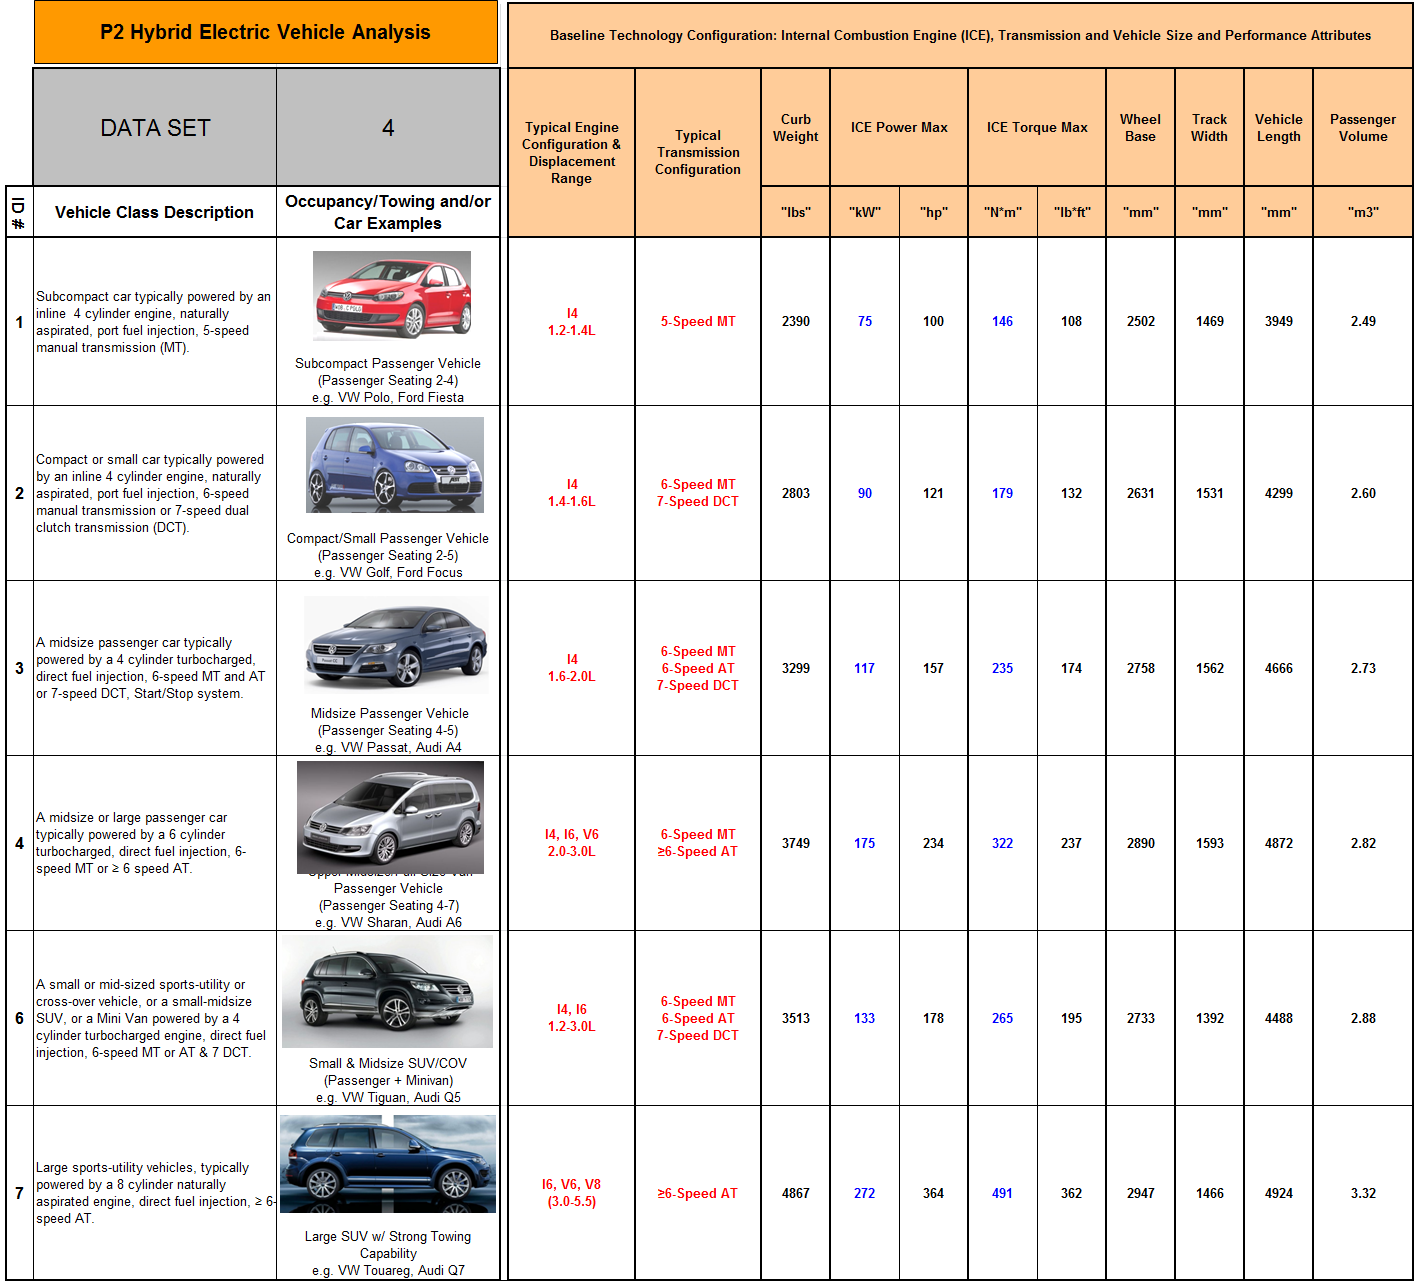 Page 125 Table G-4: P2 Vehicle Segment Attribute Database